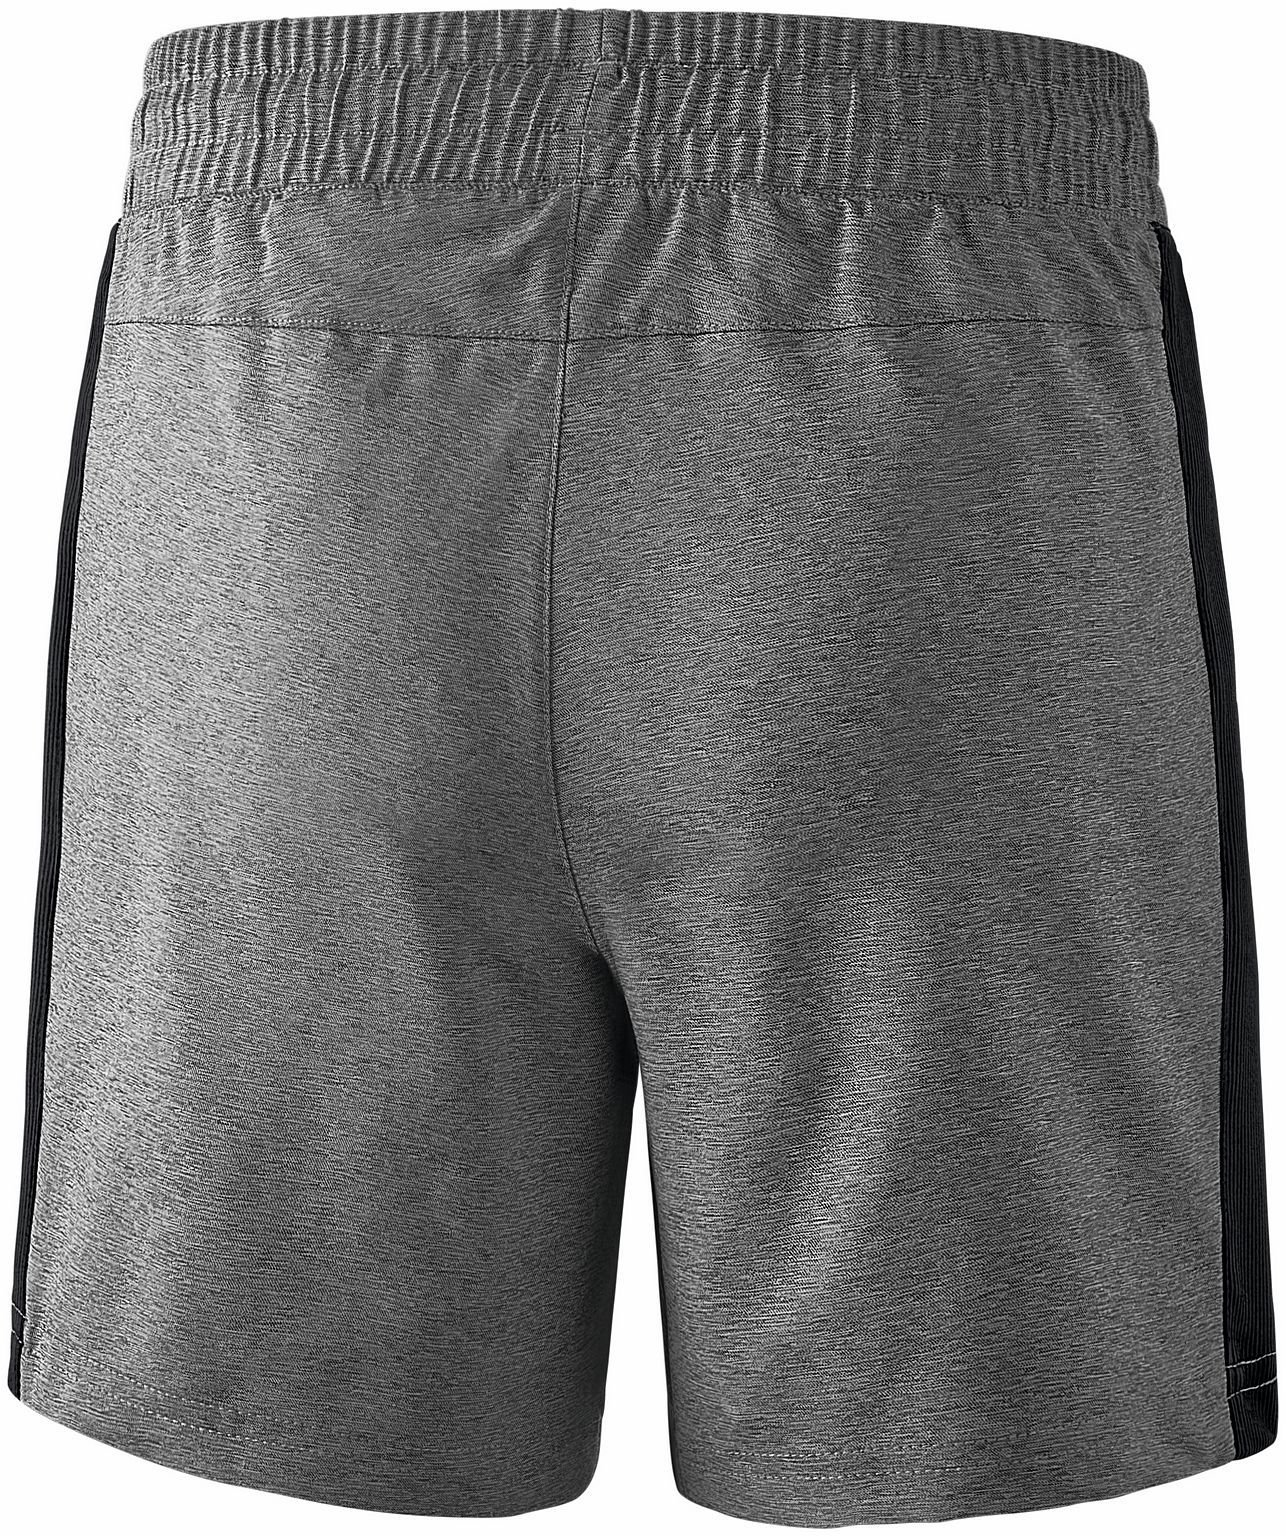 Premium One 2.0 Shorts Damen